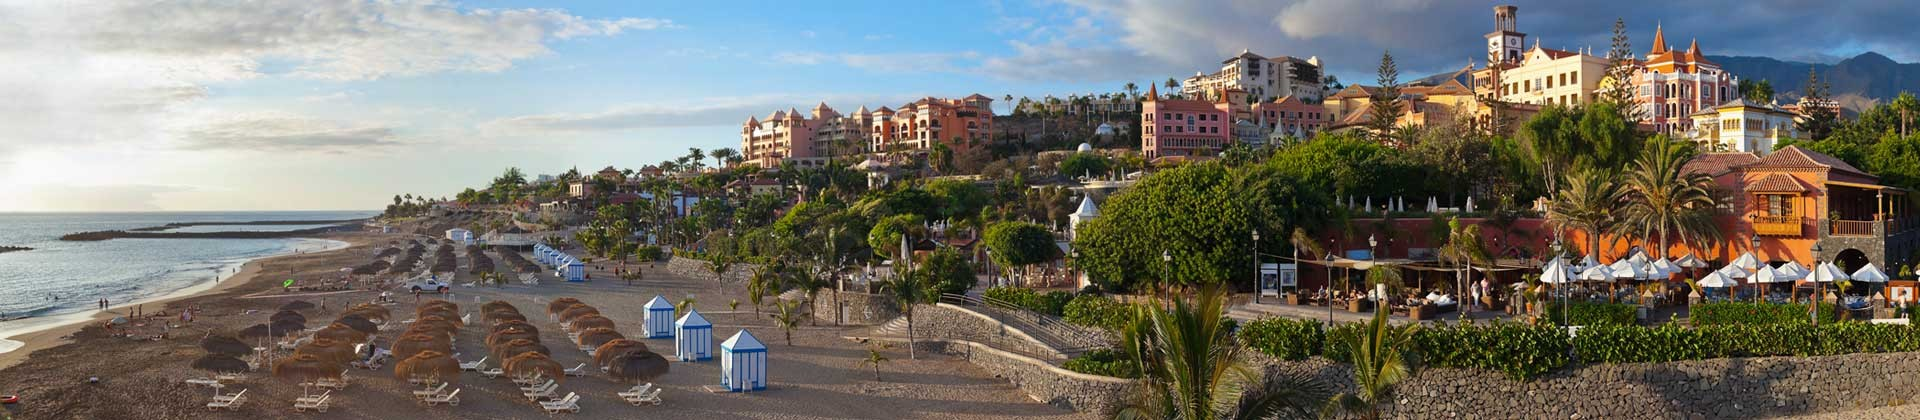 https://www.goodmorningtenerife.com/wp-content/uploads/2014/08/03_slide_beaches_GM_Tenerife1-1920x420.jpg